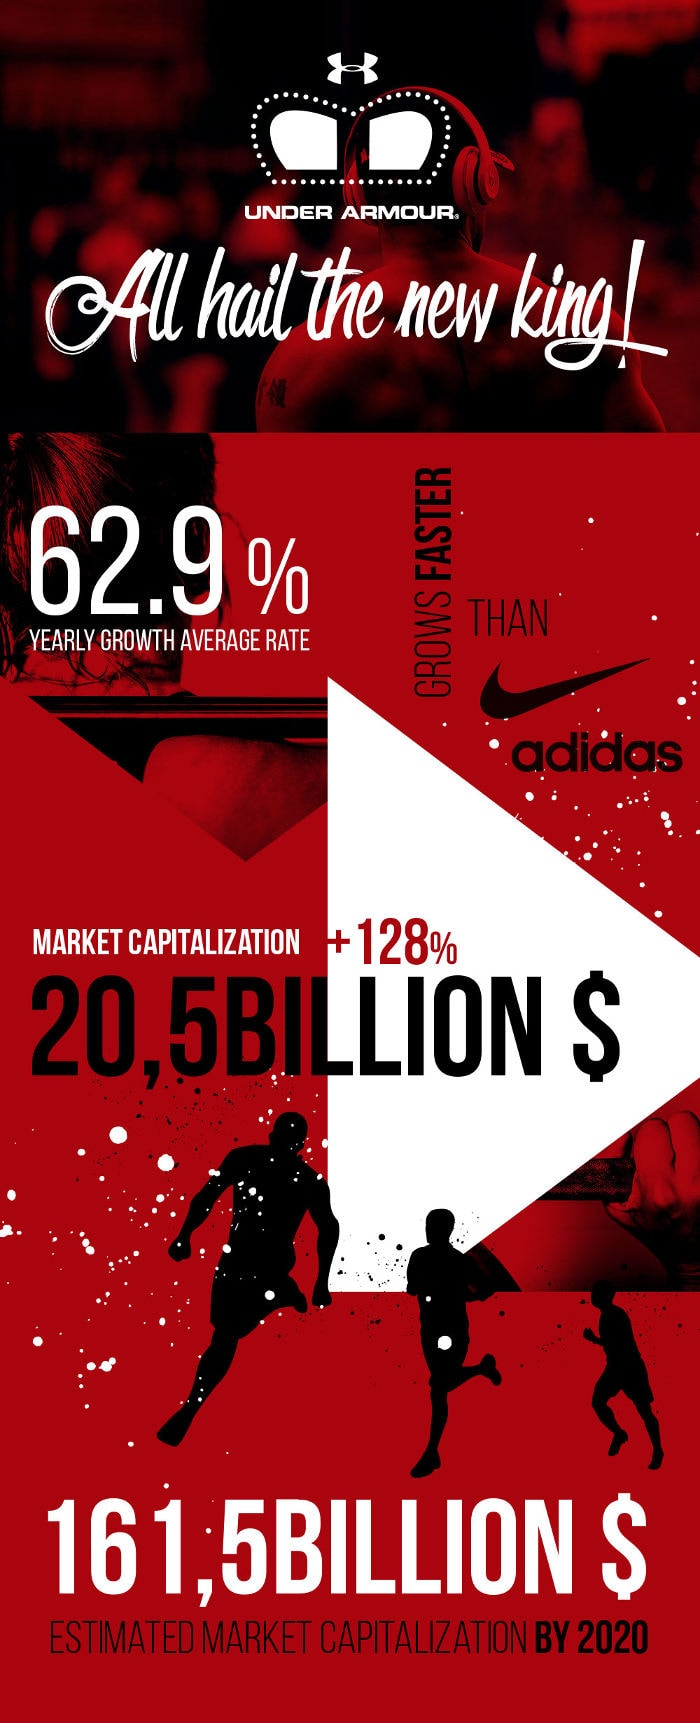 Infographic - Hoe Under Armour Adidas overtreft en Nike gaat inhalen